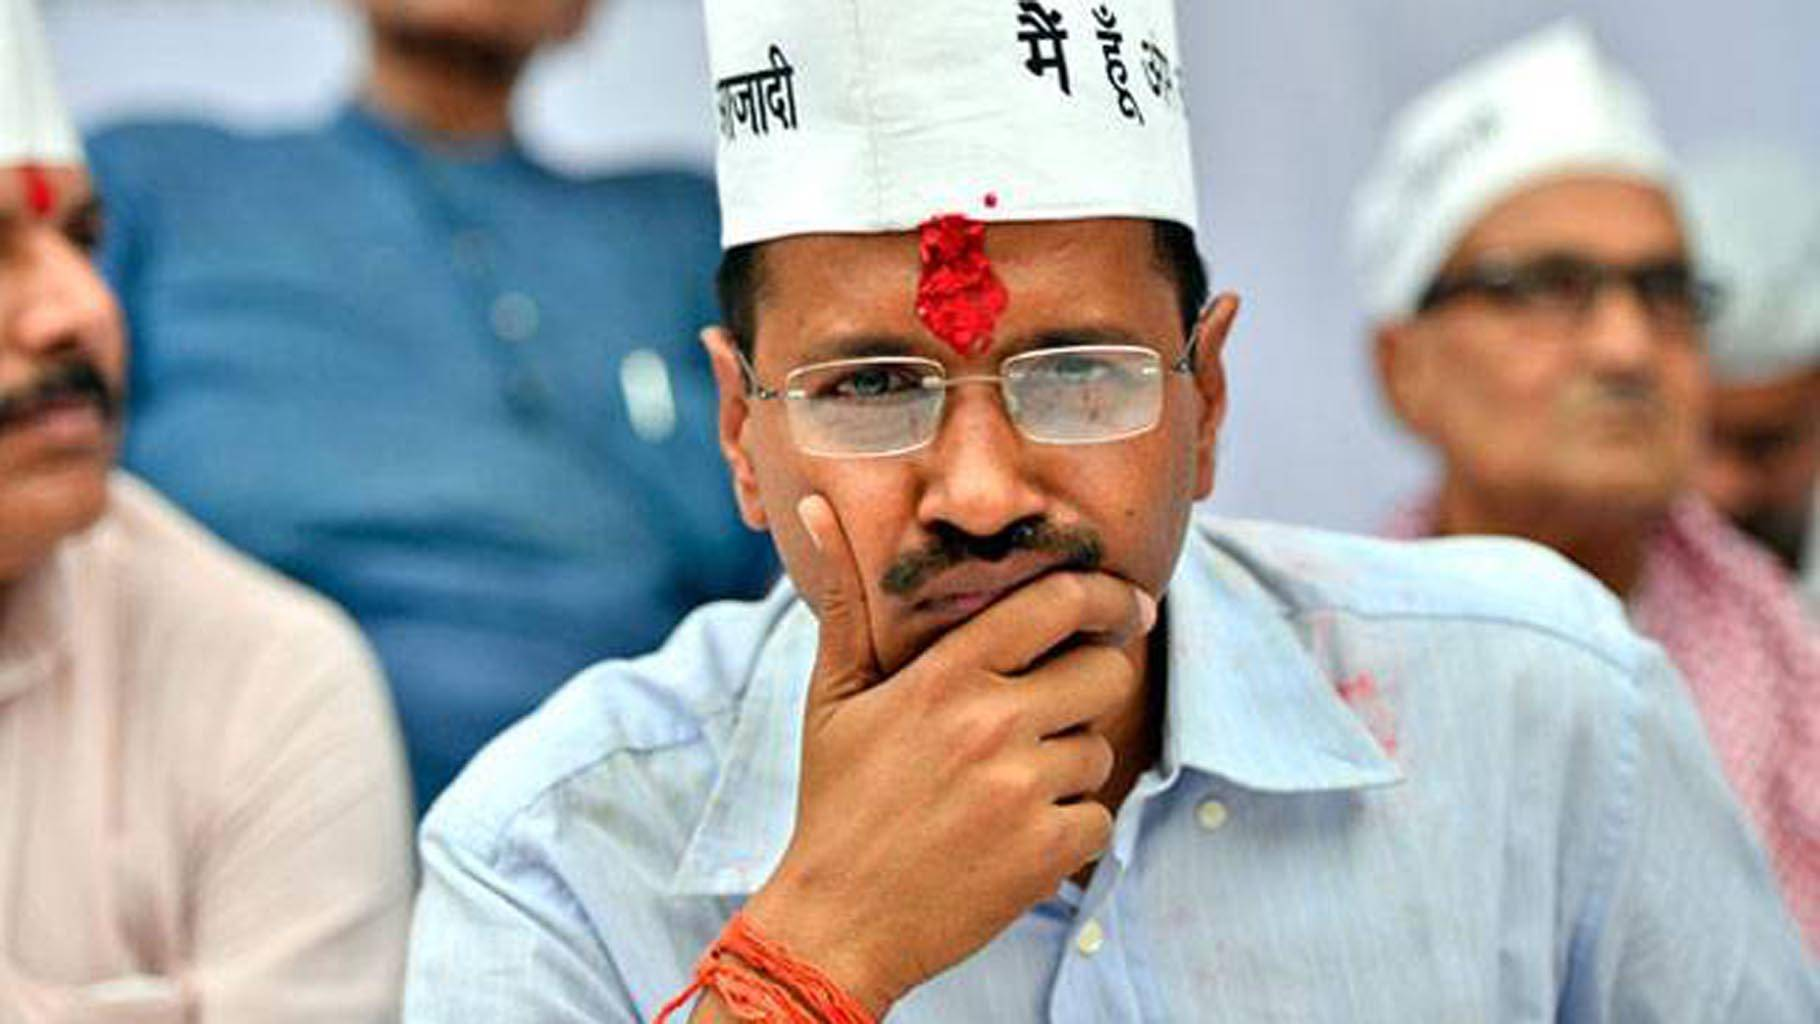 Goa Government Discredited, AAP May Contest Polls: Ashutosh